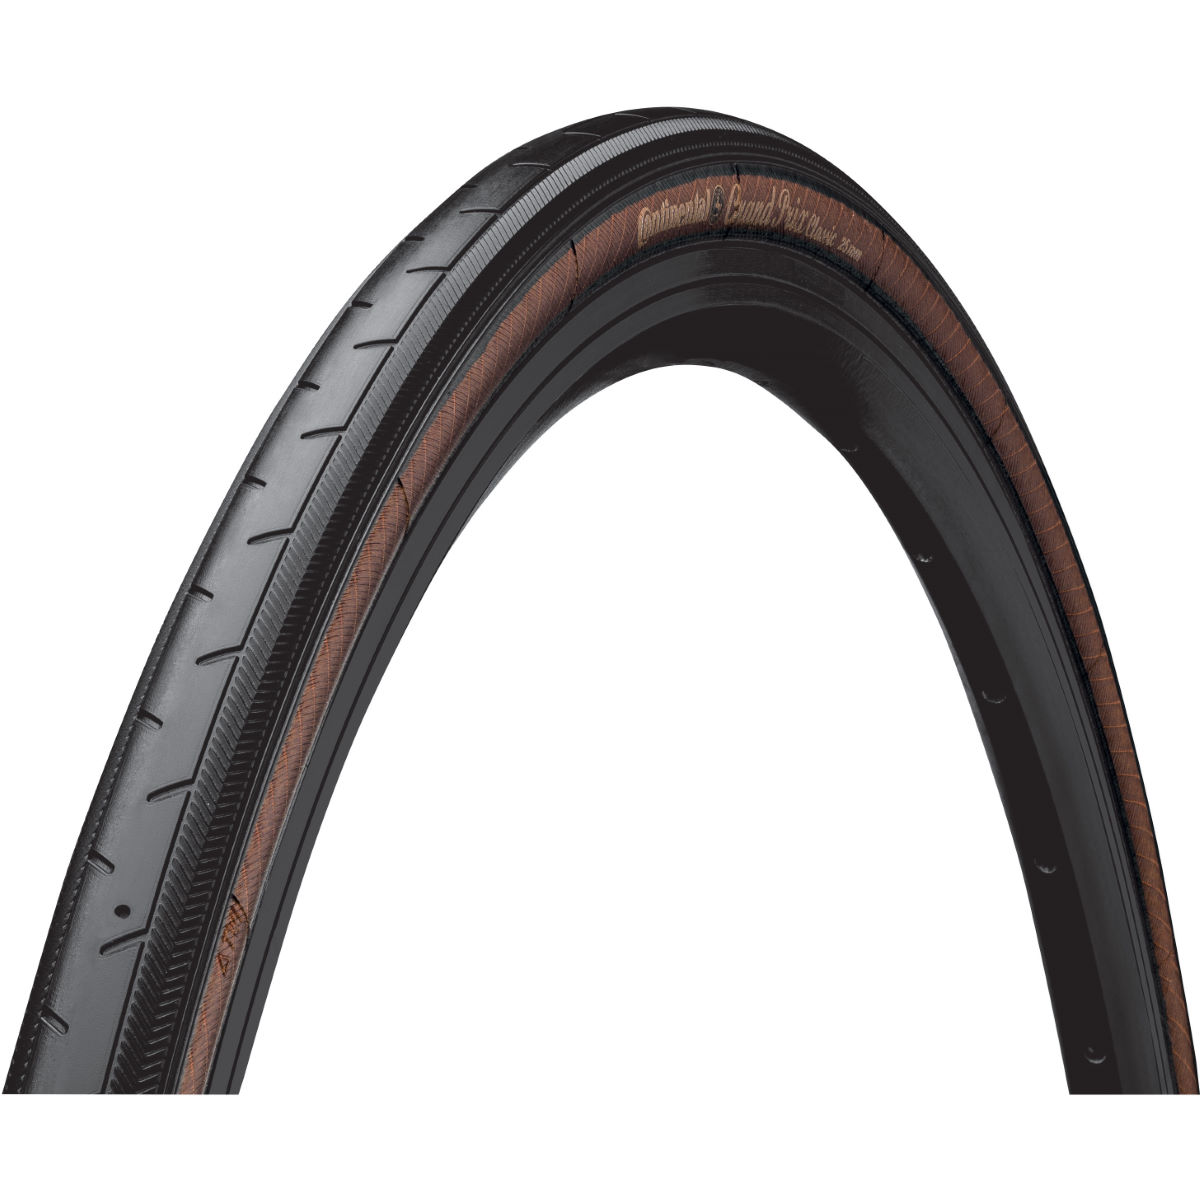 Continental Continental Grand Prix Classic Folding Road Tyre   Tyres